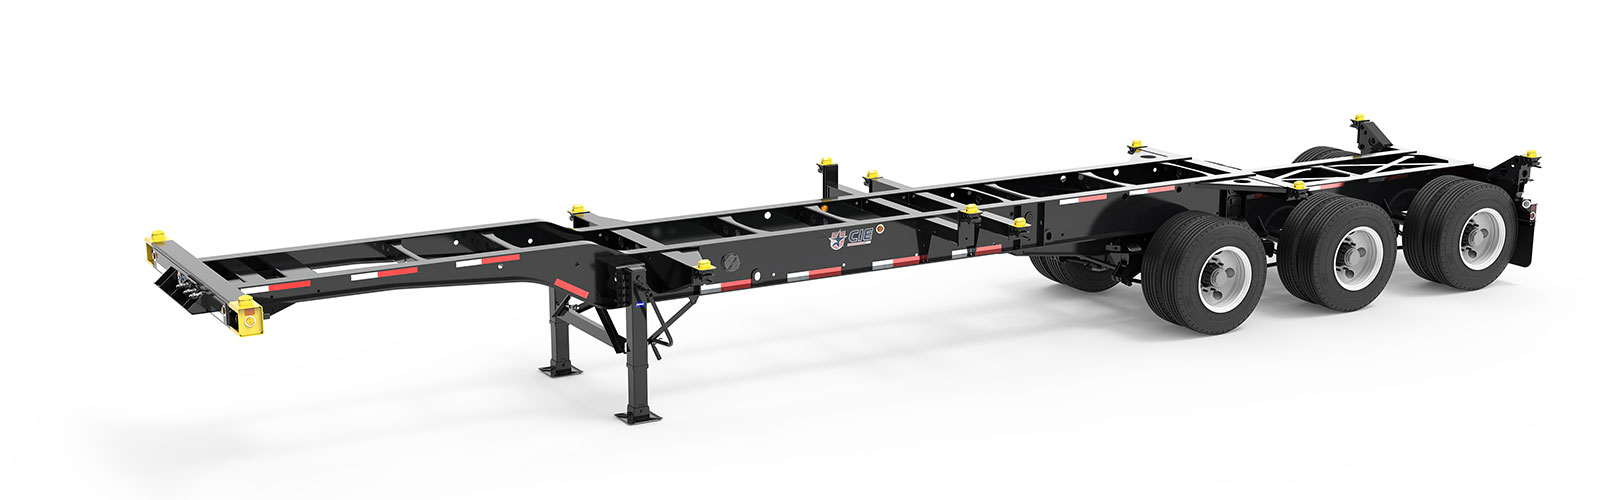 20-40' Combo Tridem Container Chassis Angle View Final